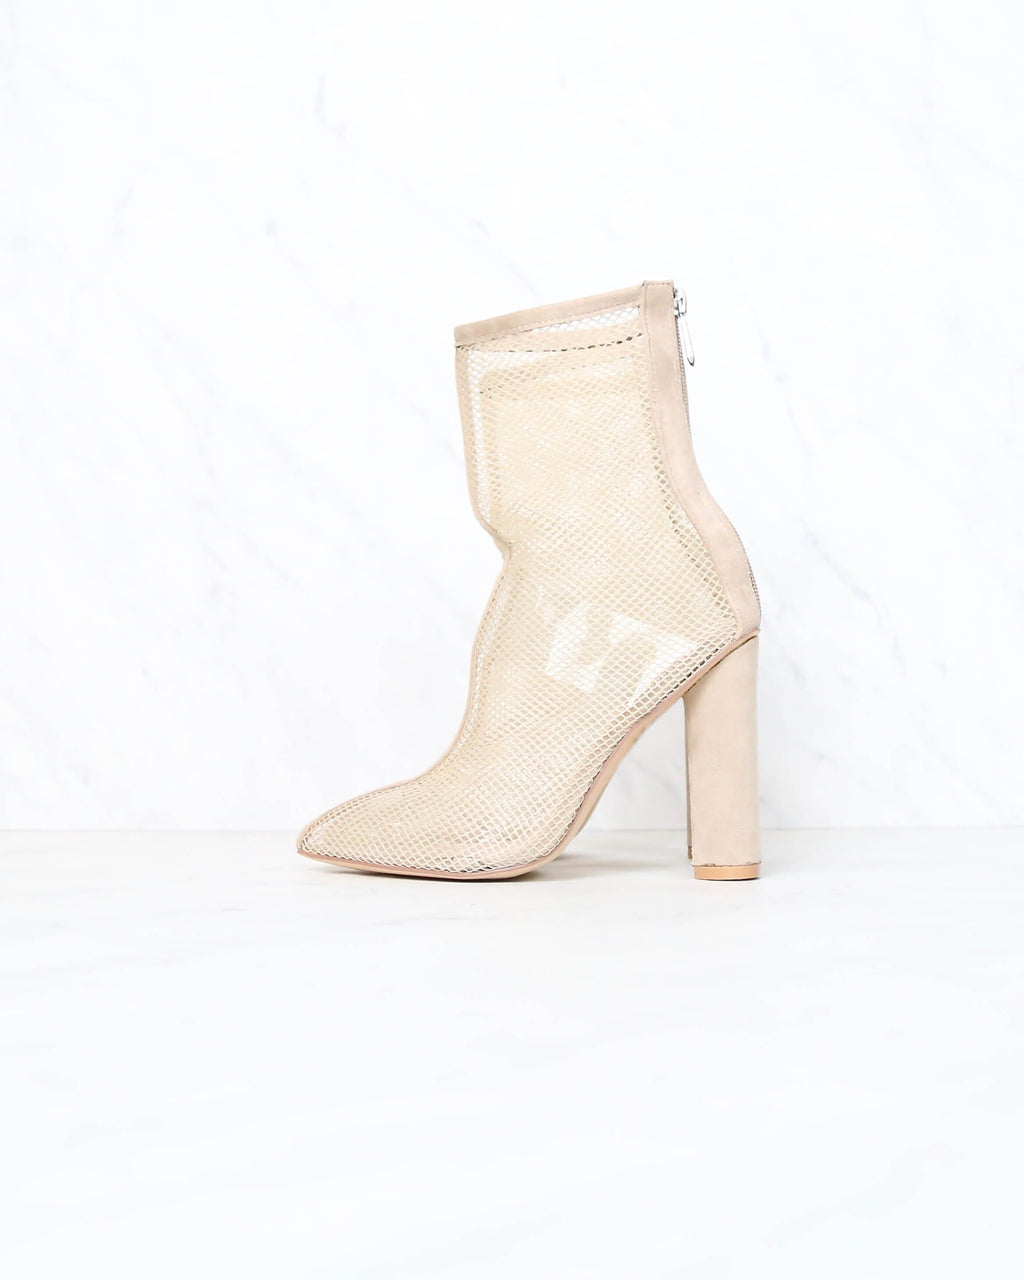 Cape Robbin - Other Woman Pointed Toe Mesh Heel Bootie in Nude